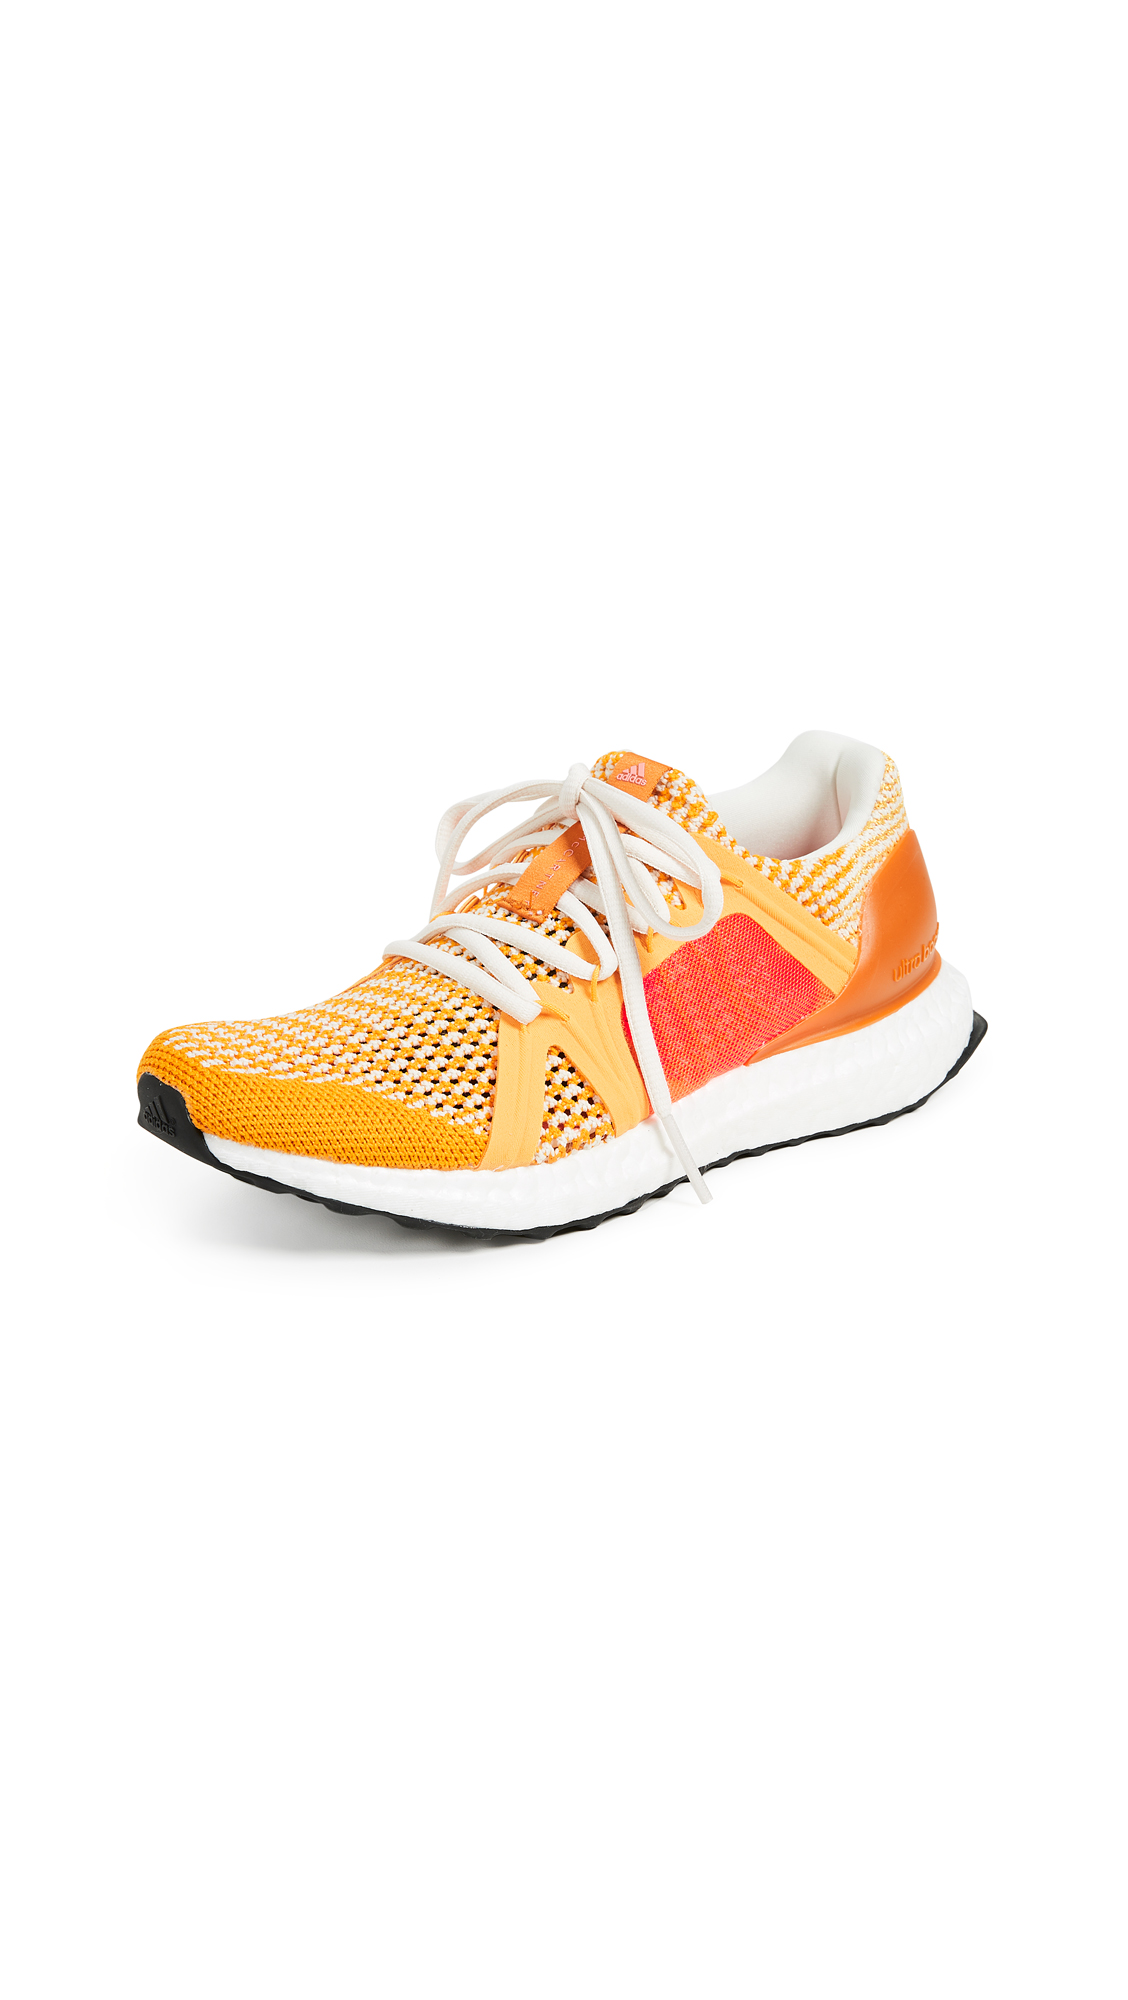 adidas by Stella McCartney UltraBOOST Sneakers - Gold/Rust Orange/Turbo